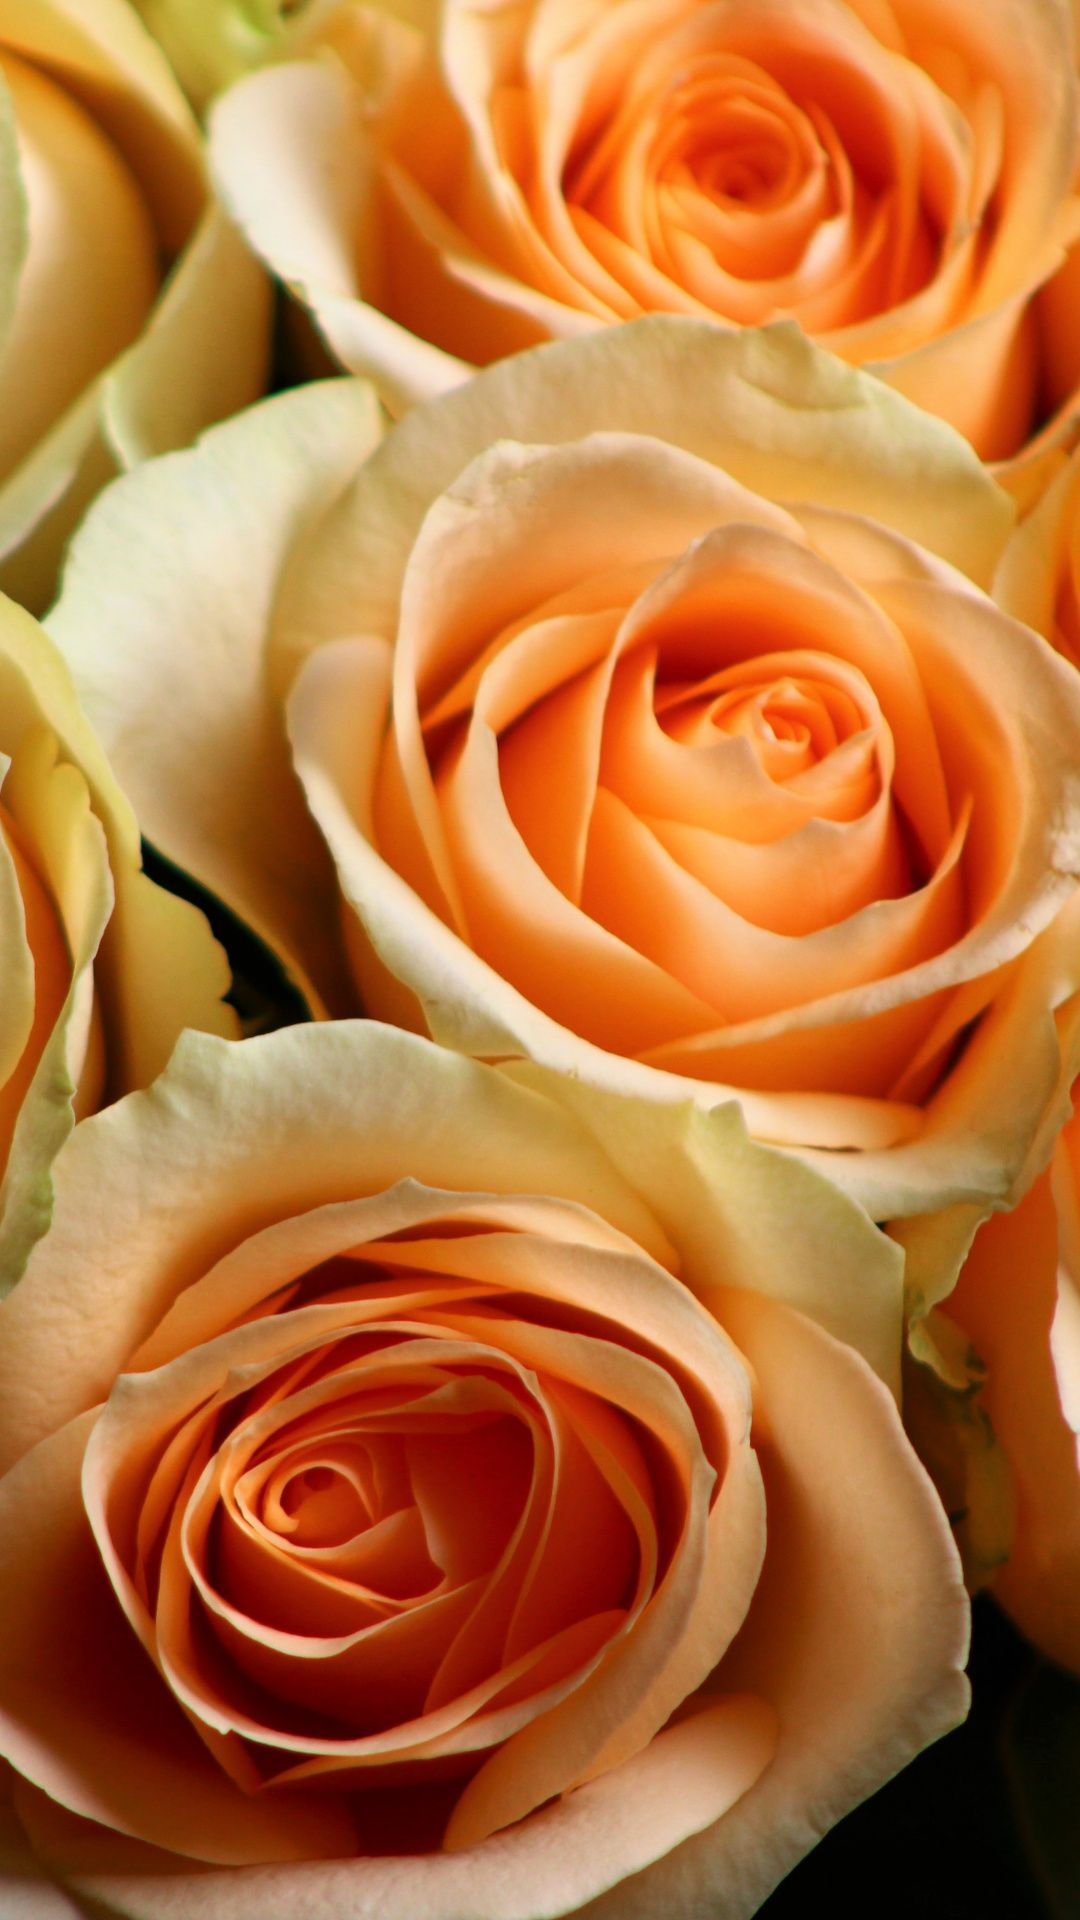 1080x1920 Downaload Orange, roses, bouquet, close up wallpaper for screen ...